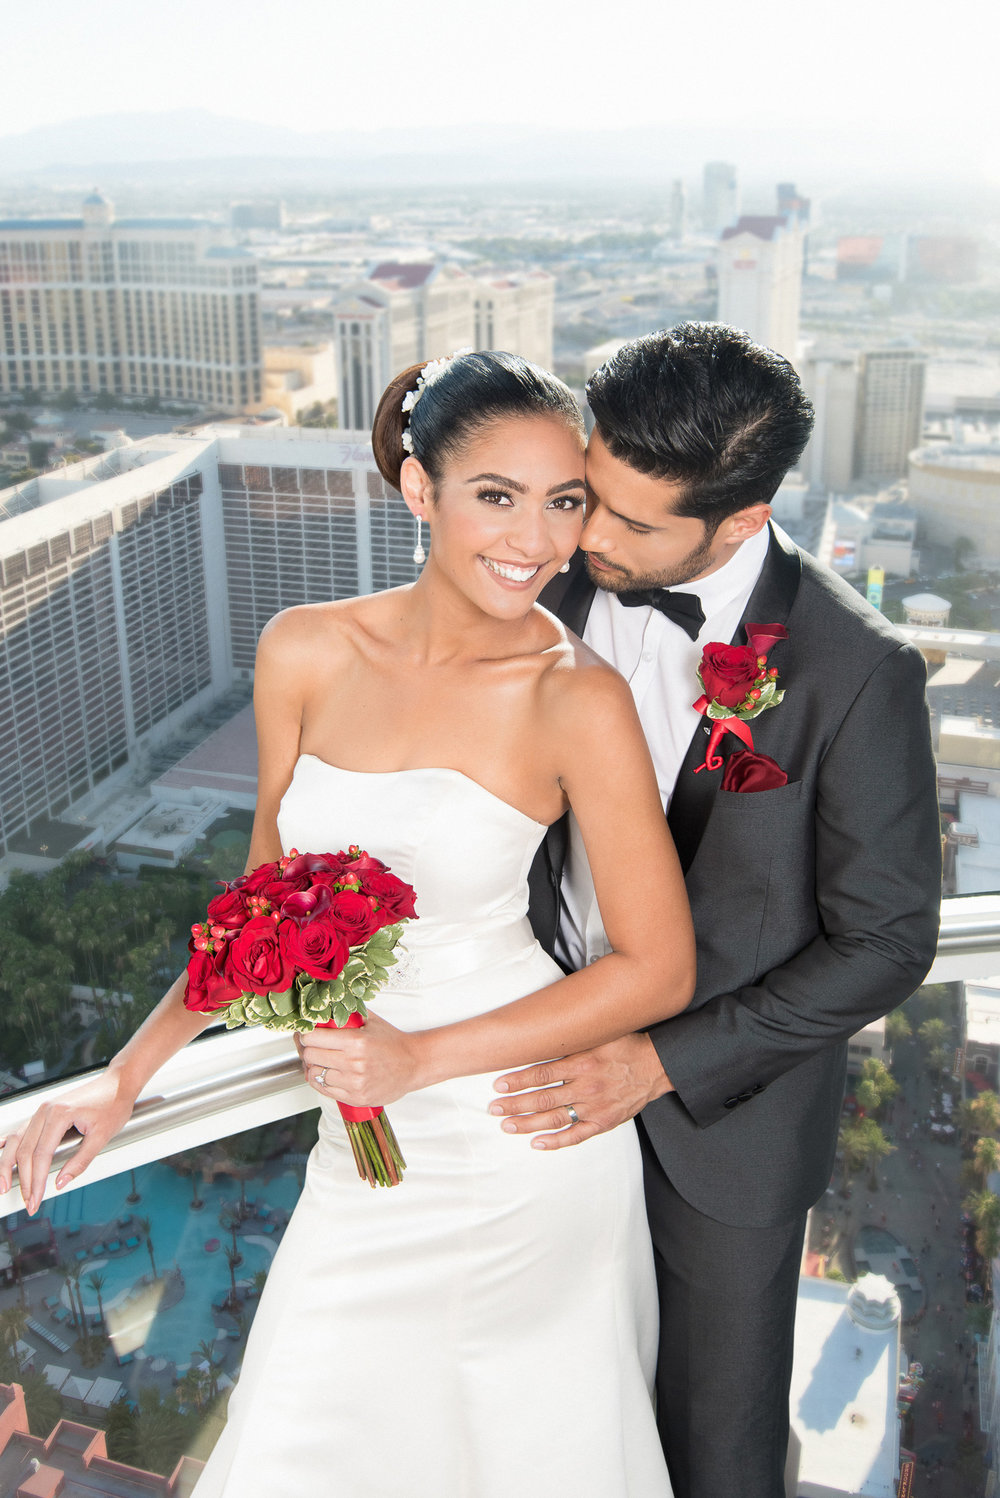 Wedding Hair and Makeup in Las Vegas